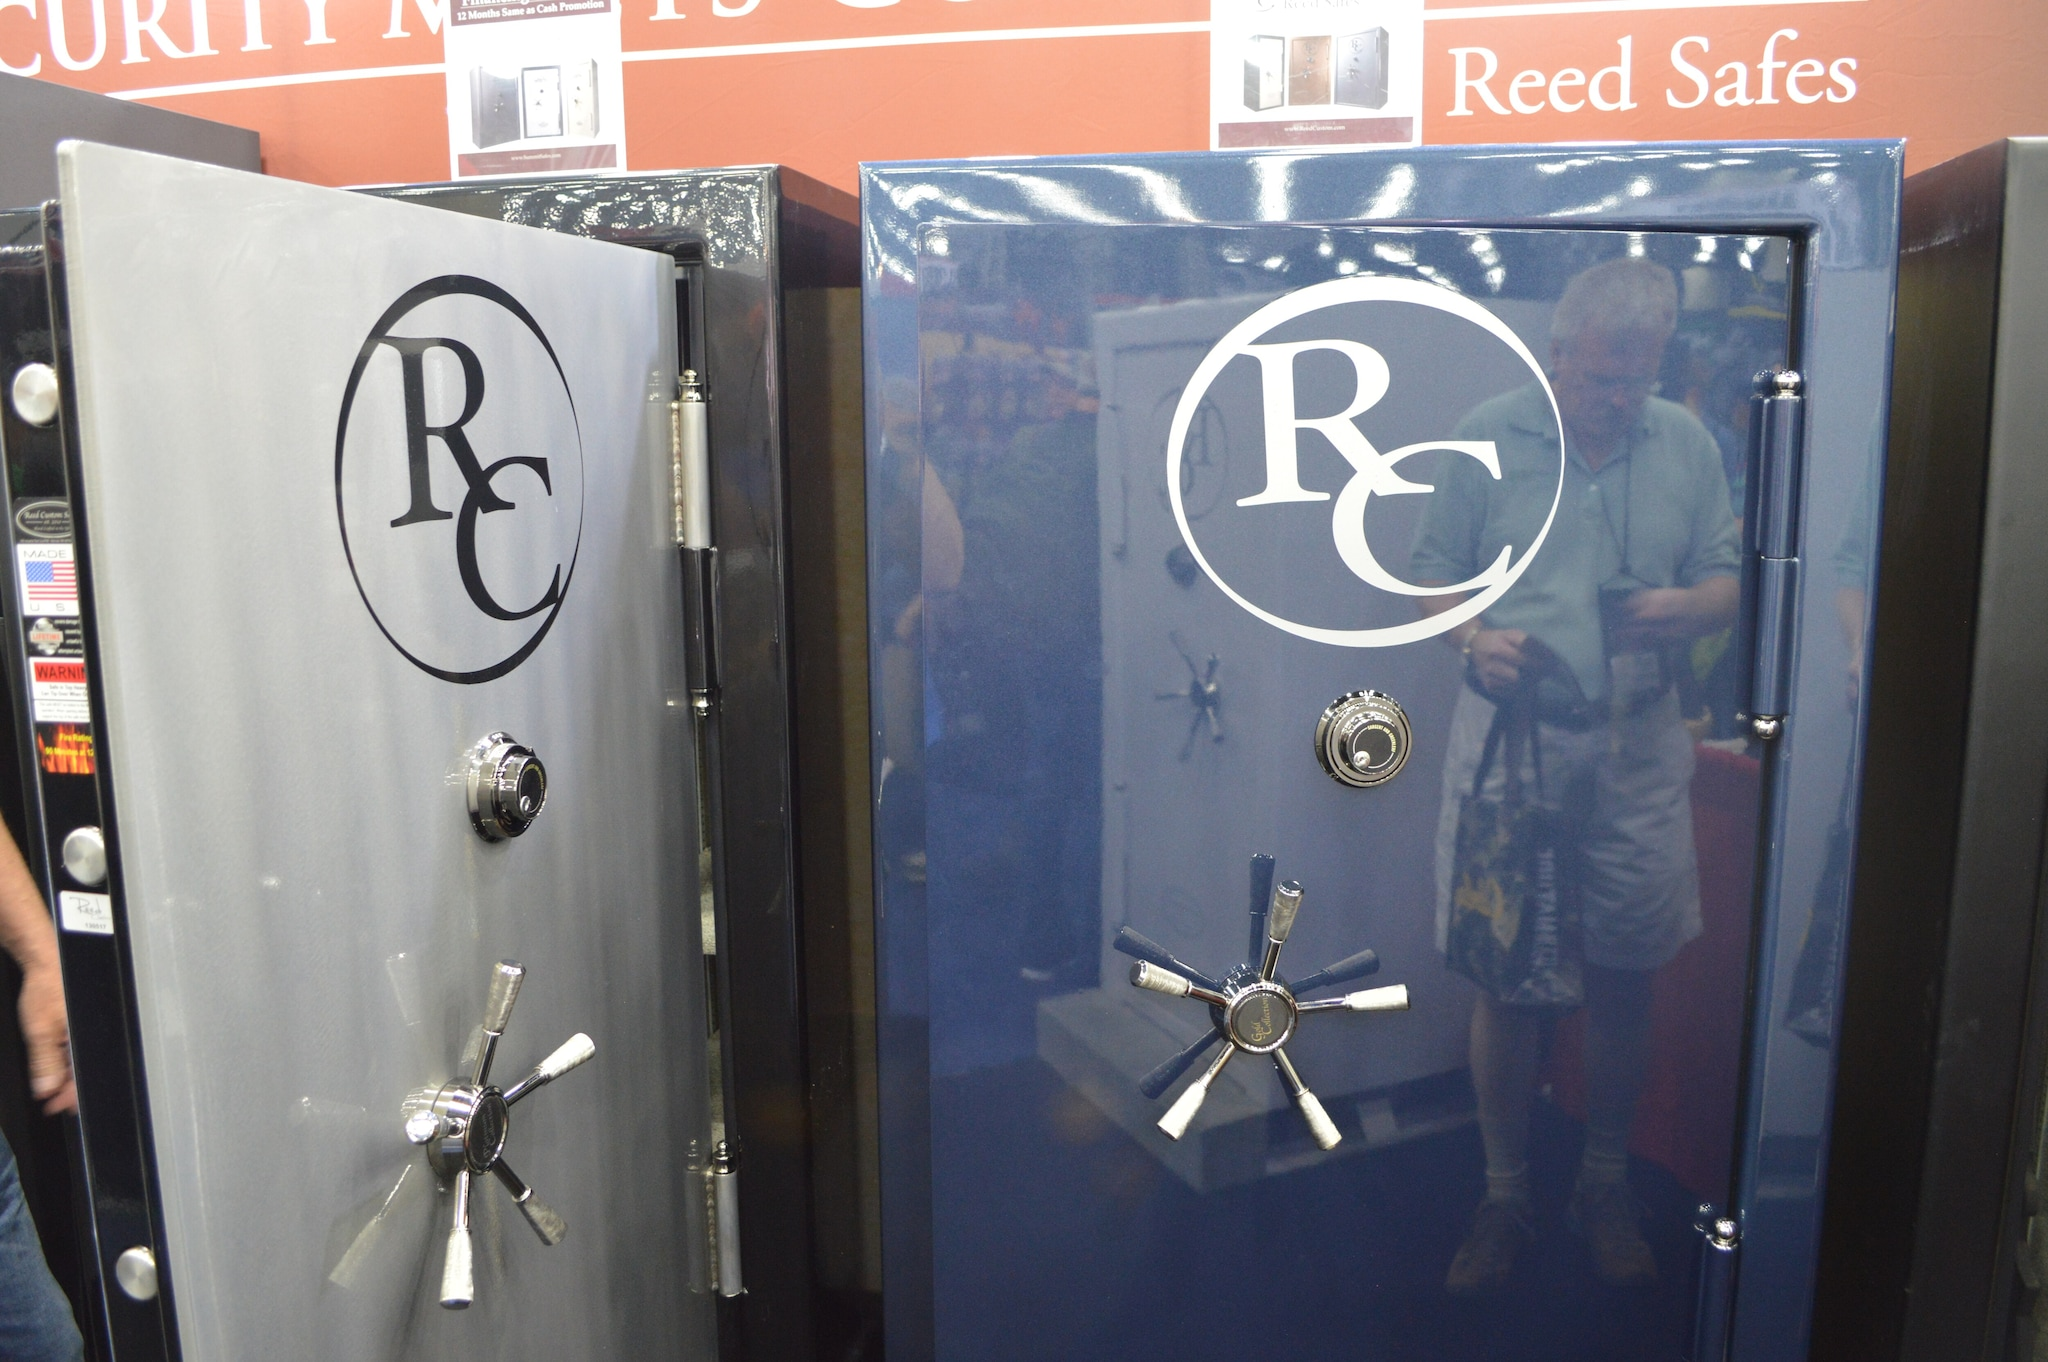 Reed Safes pair a fresh interior design with a rugged Made-in-the-USA build.